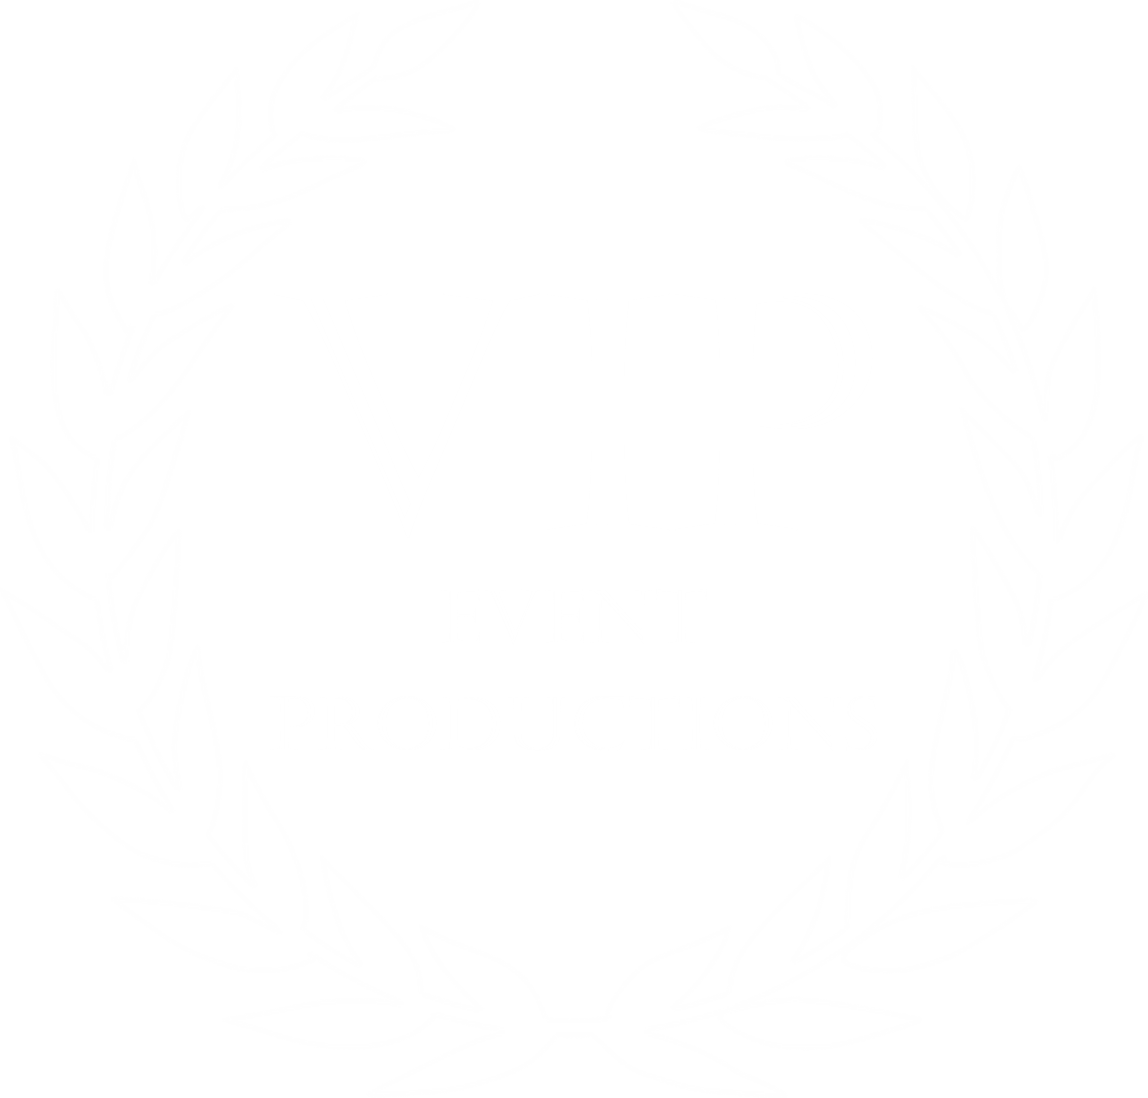 VIP Event Productions